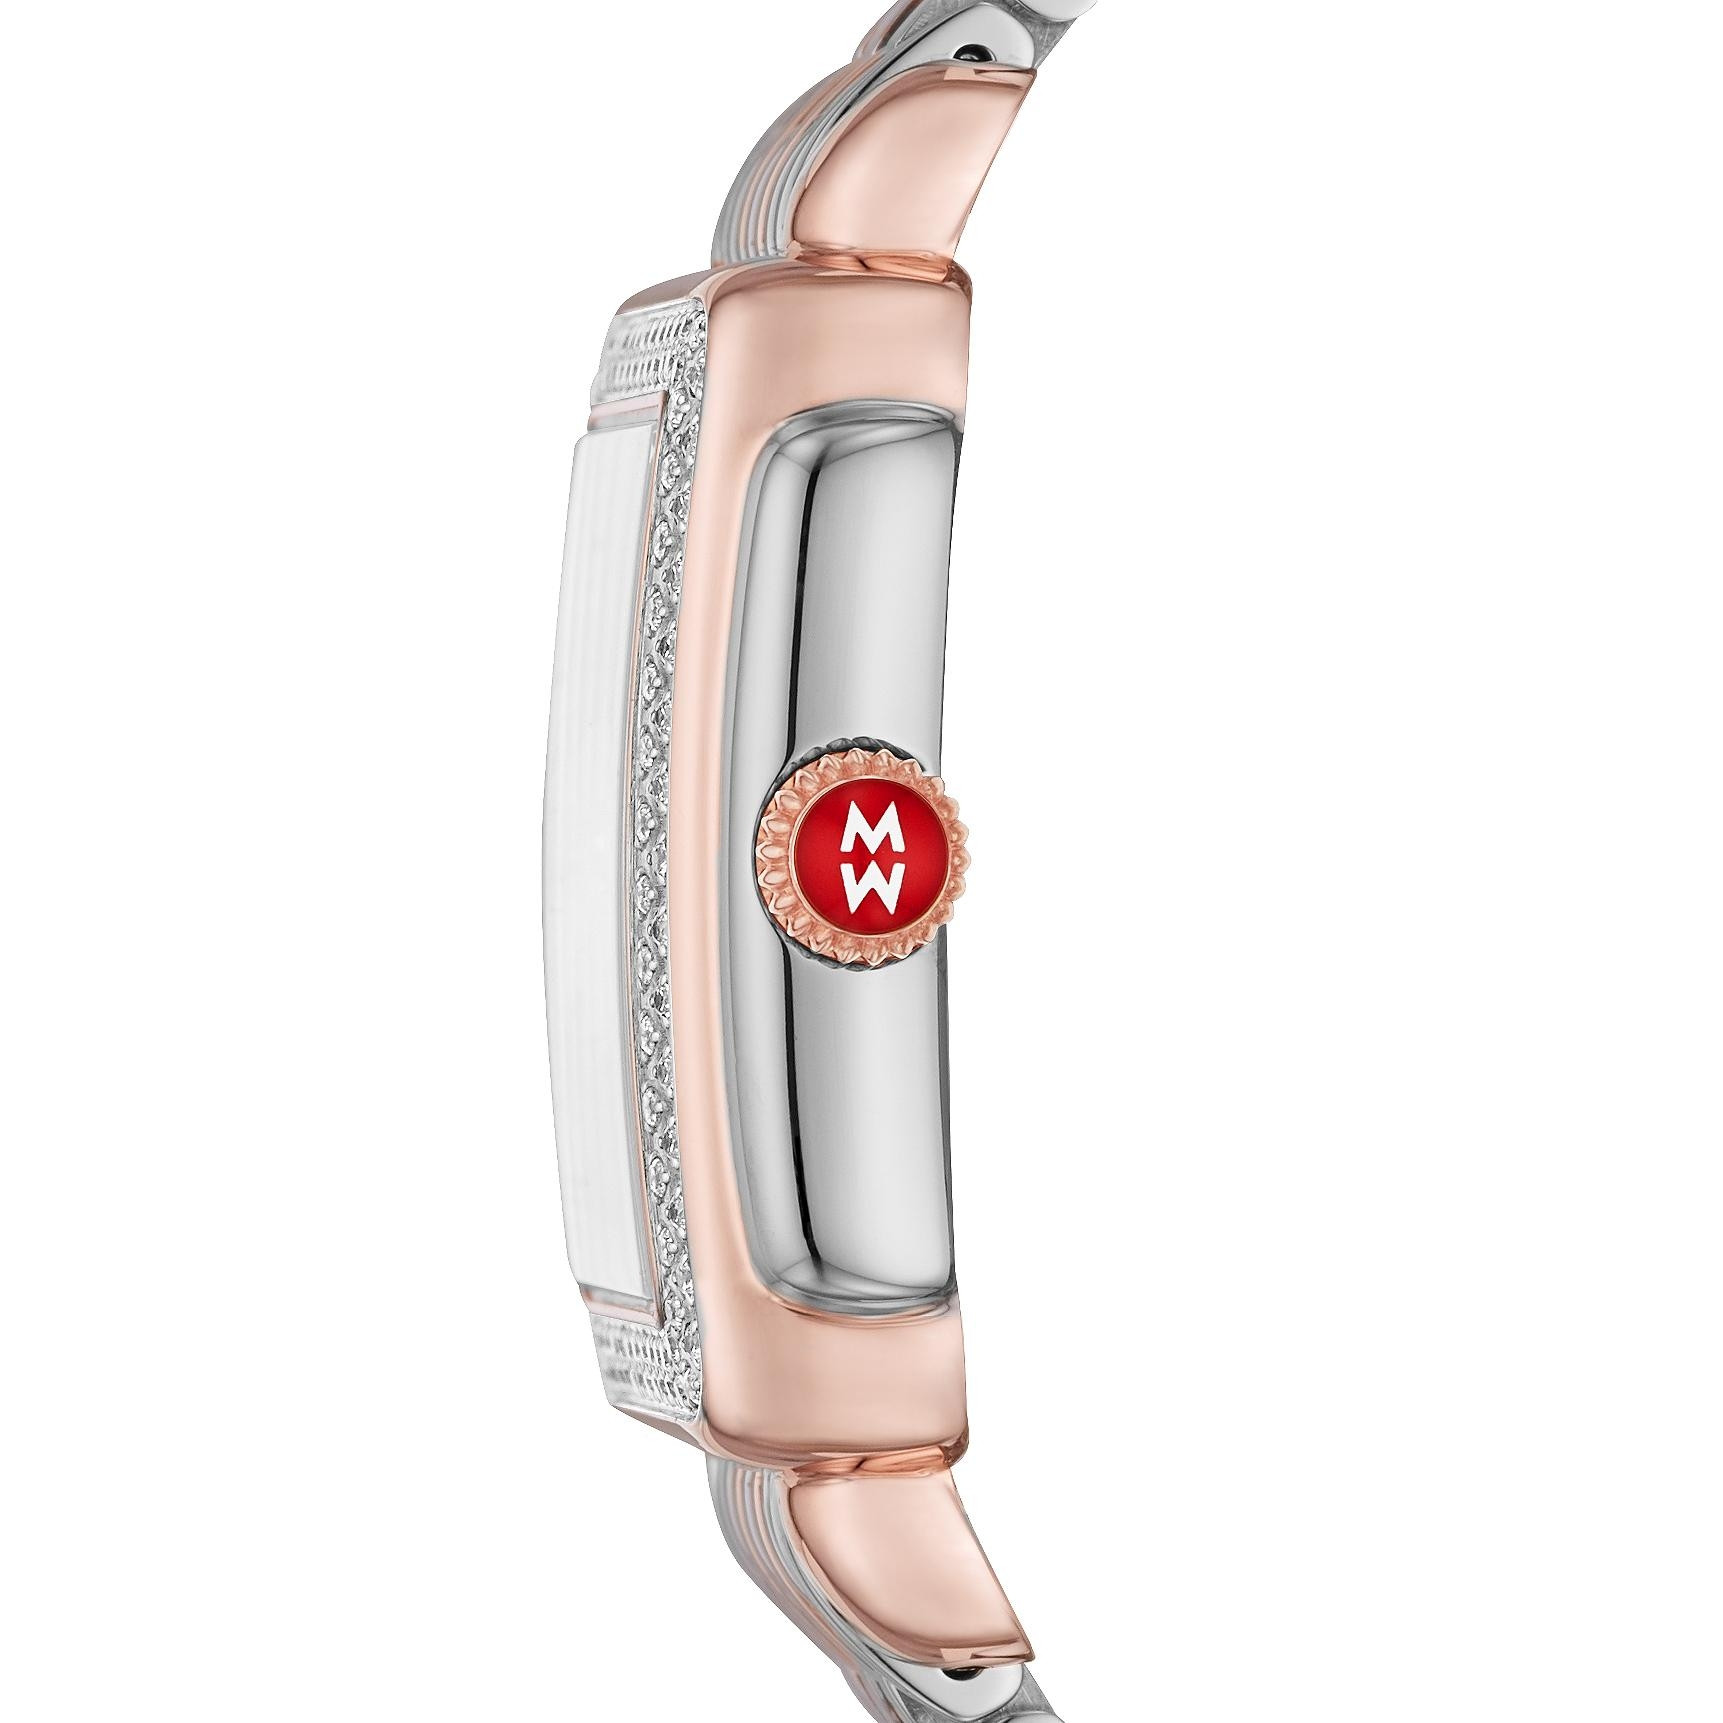 Michele Deco Madison Mid Diamond Dial Watch in Pink Gold and Steel side view